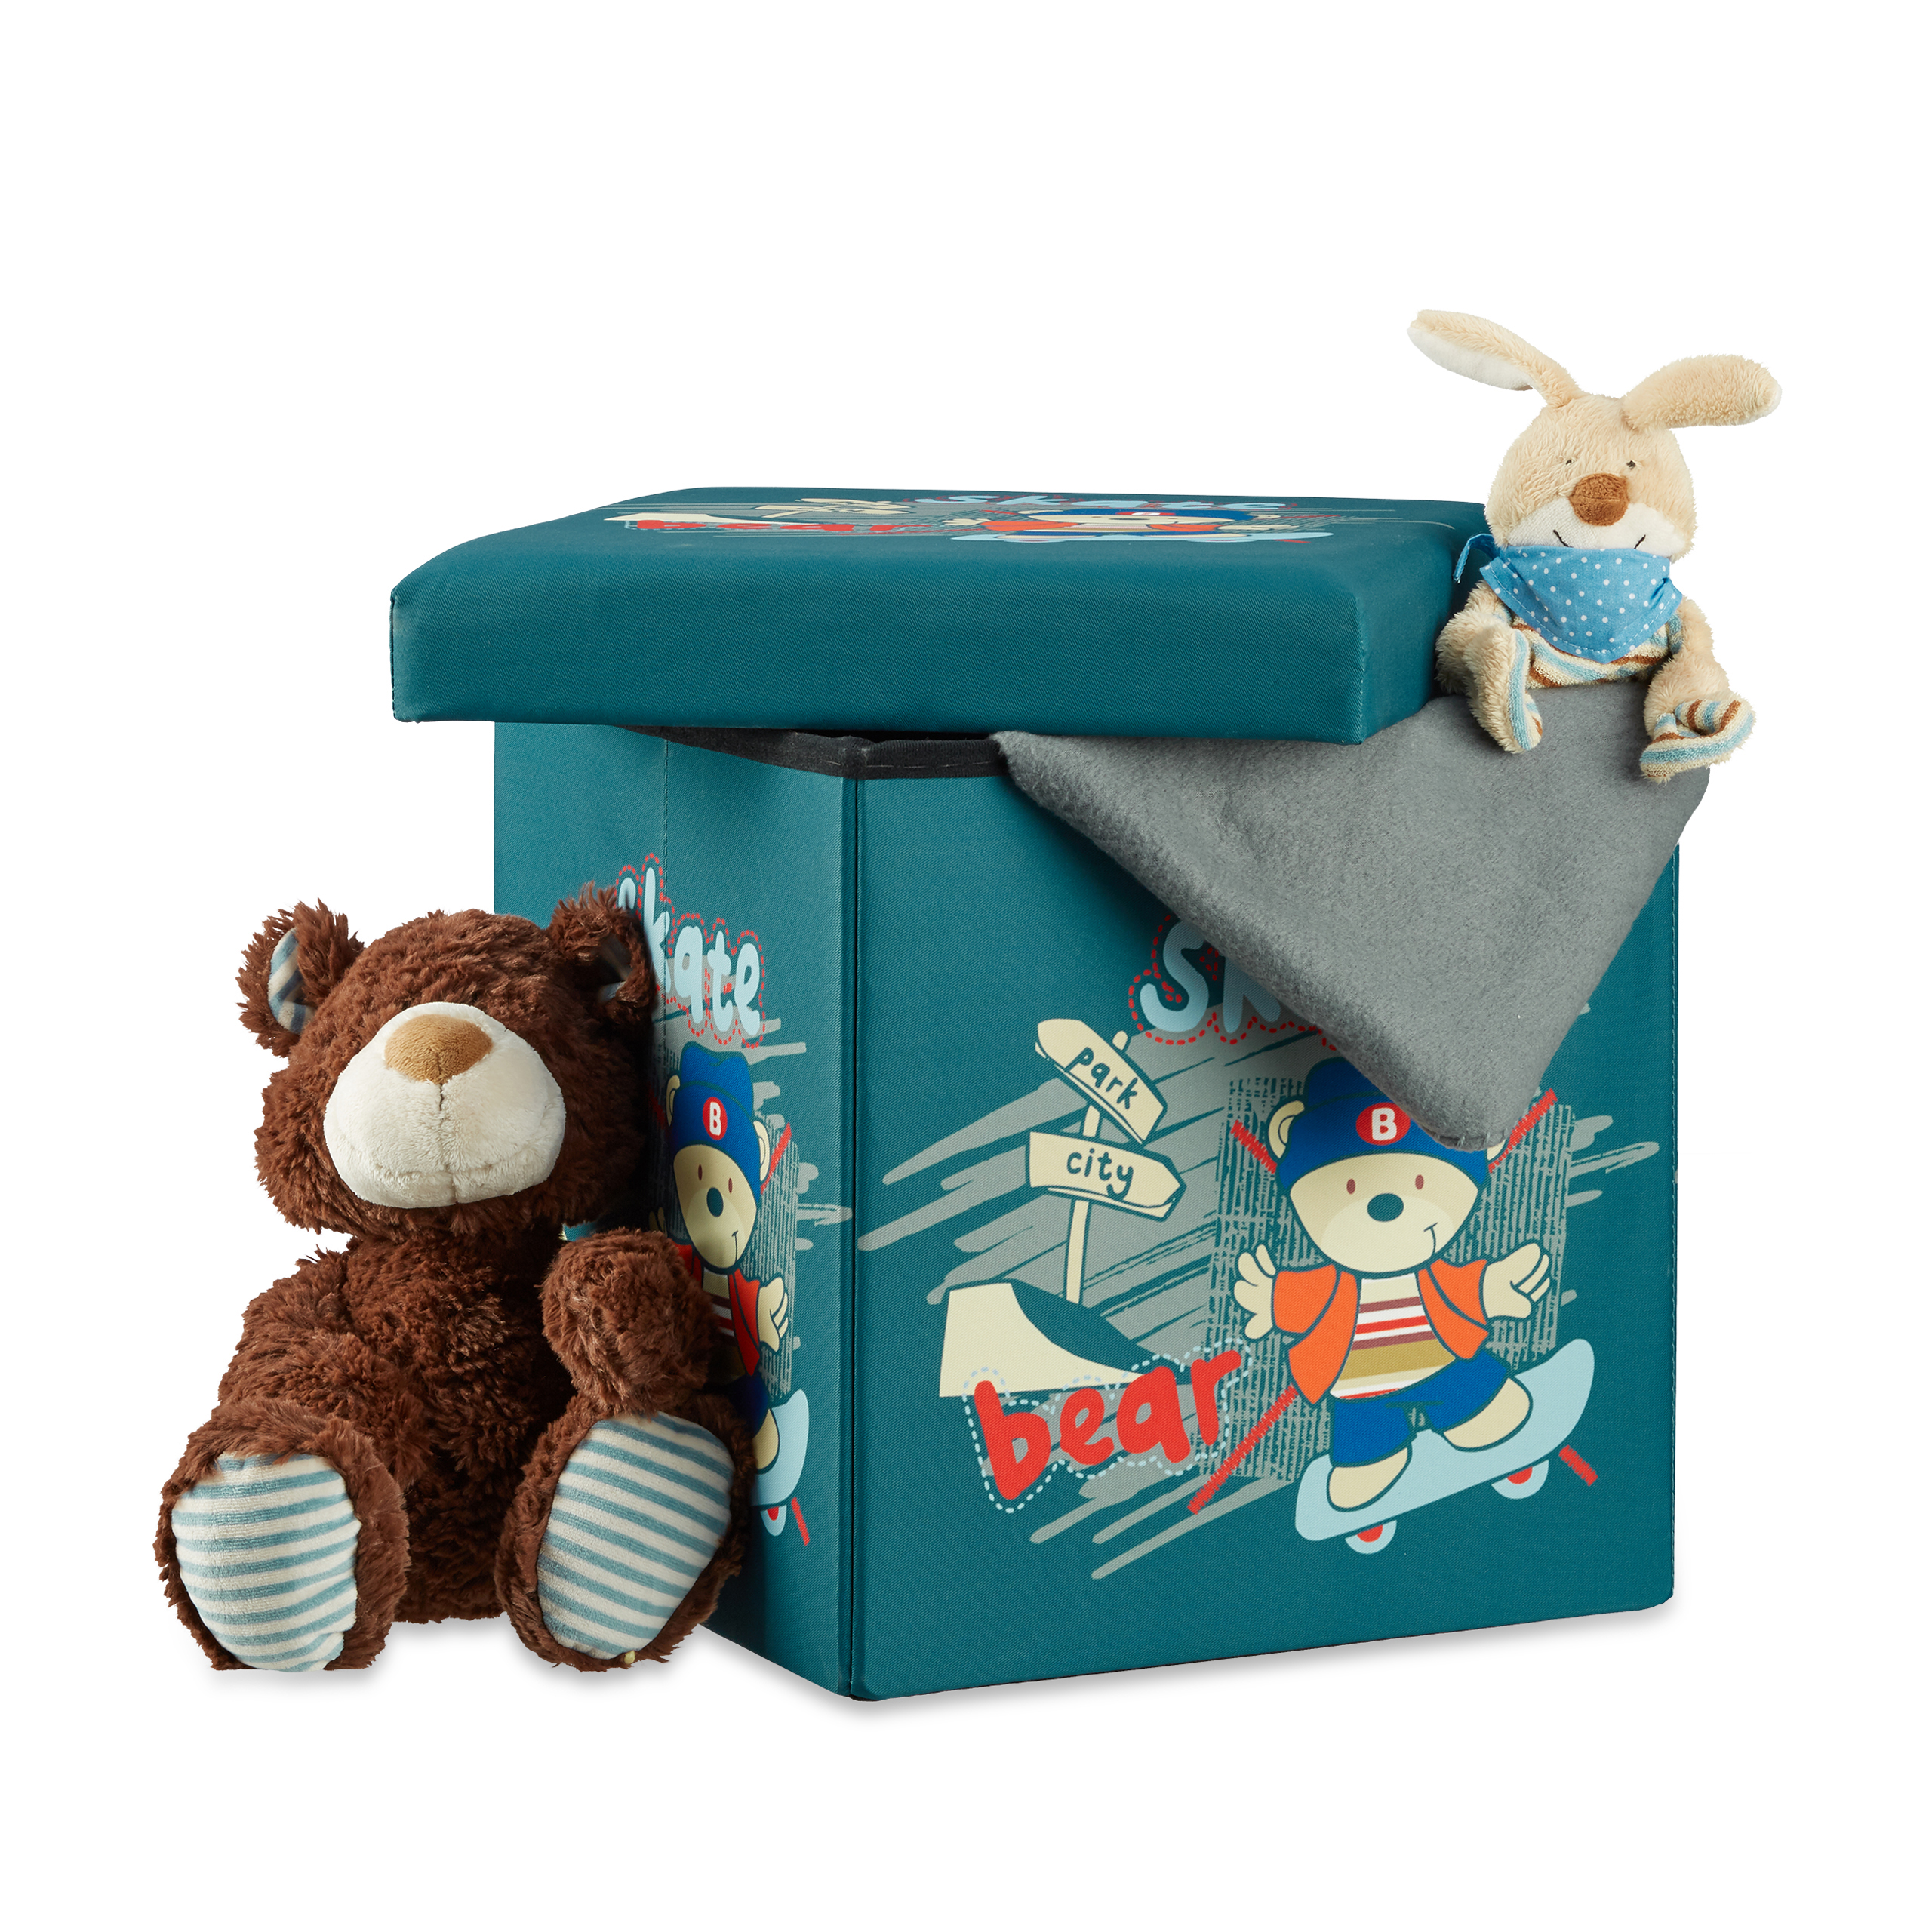 Kid-s-Folding-Storage-Ottoman-Toy-Box-Foldable-Children-s-Cube-Seat-Pouf-w-Lid